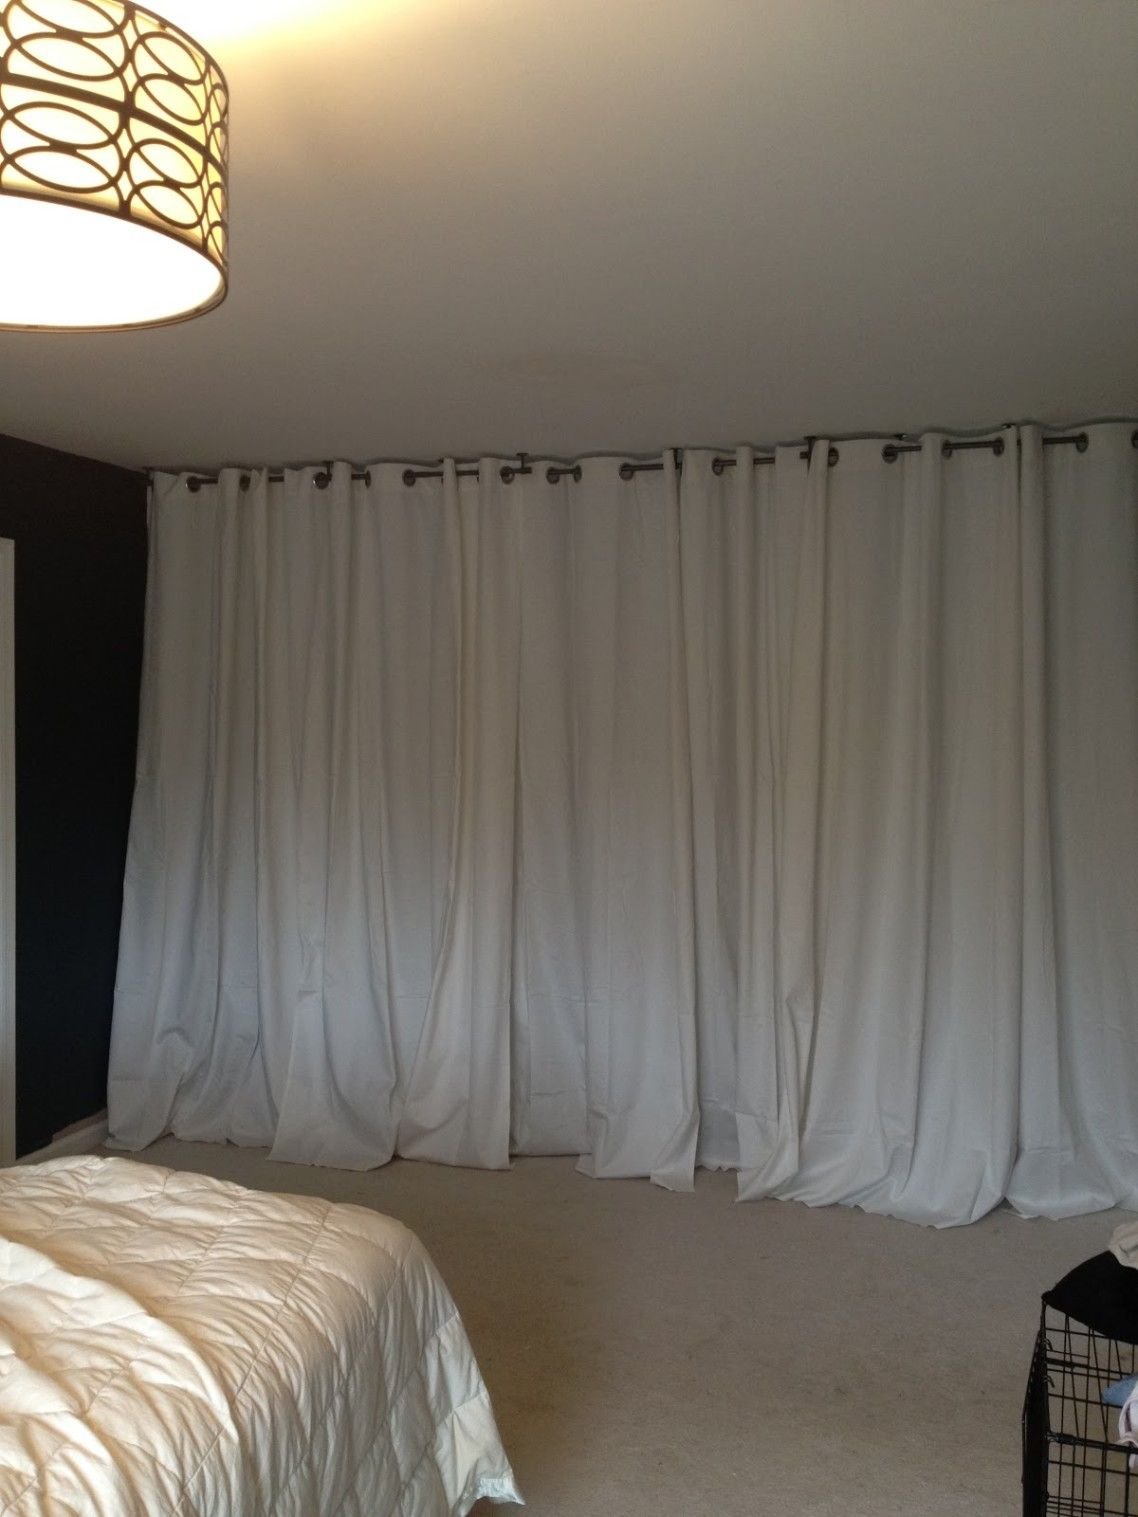 The Bedroom Divider Curtains An Easy Way To Create A Private